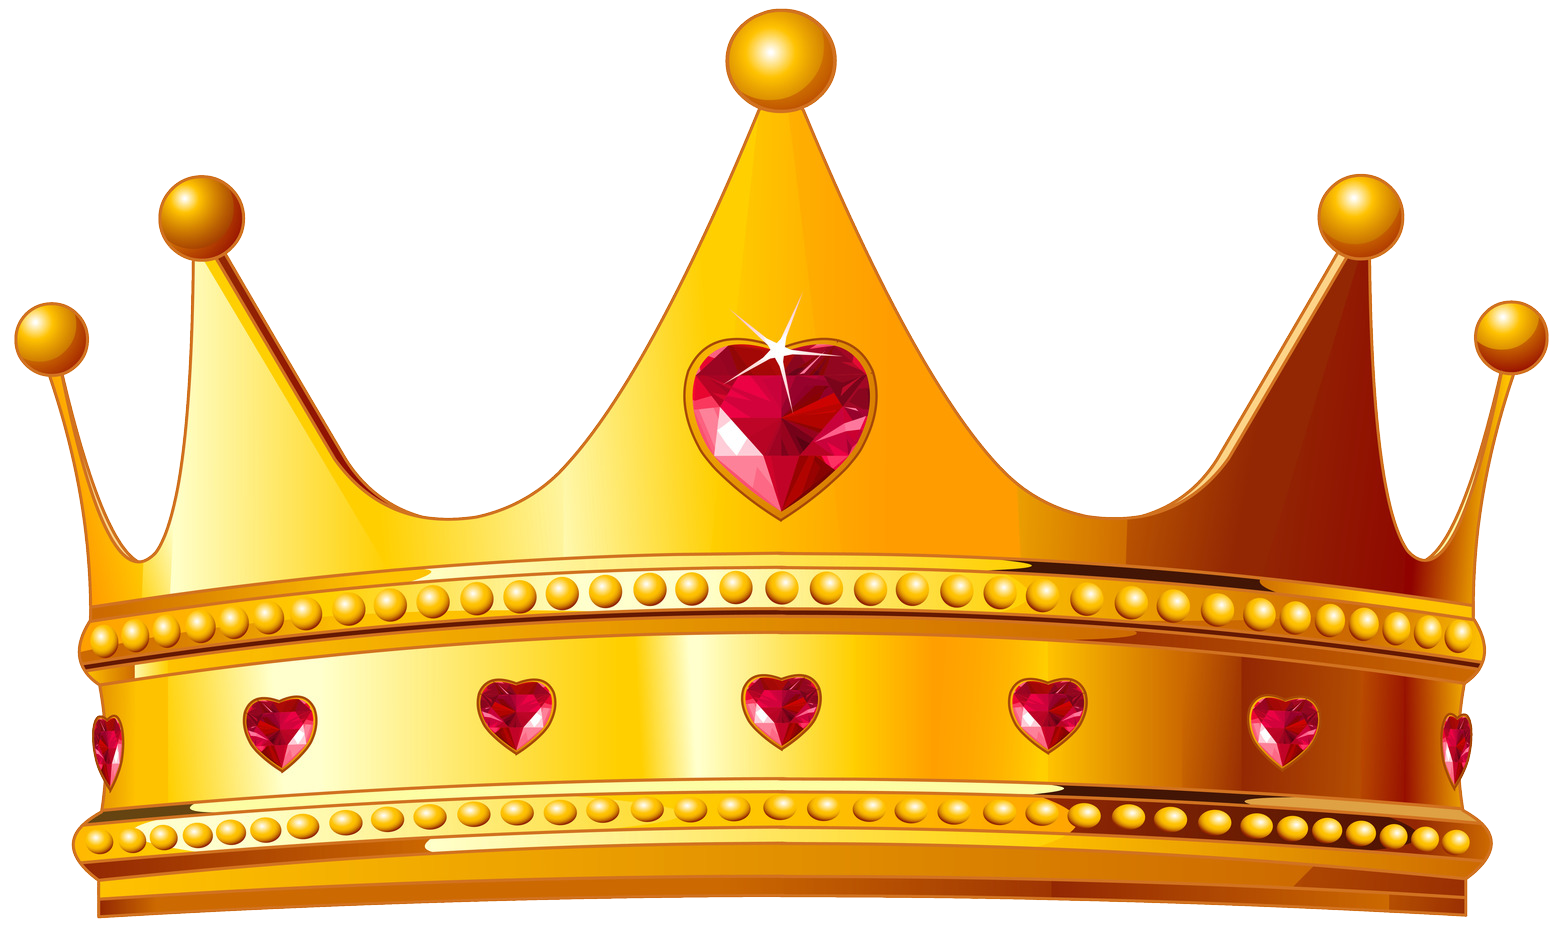 Full Hd Crown Png Transparent Background.